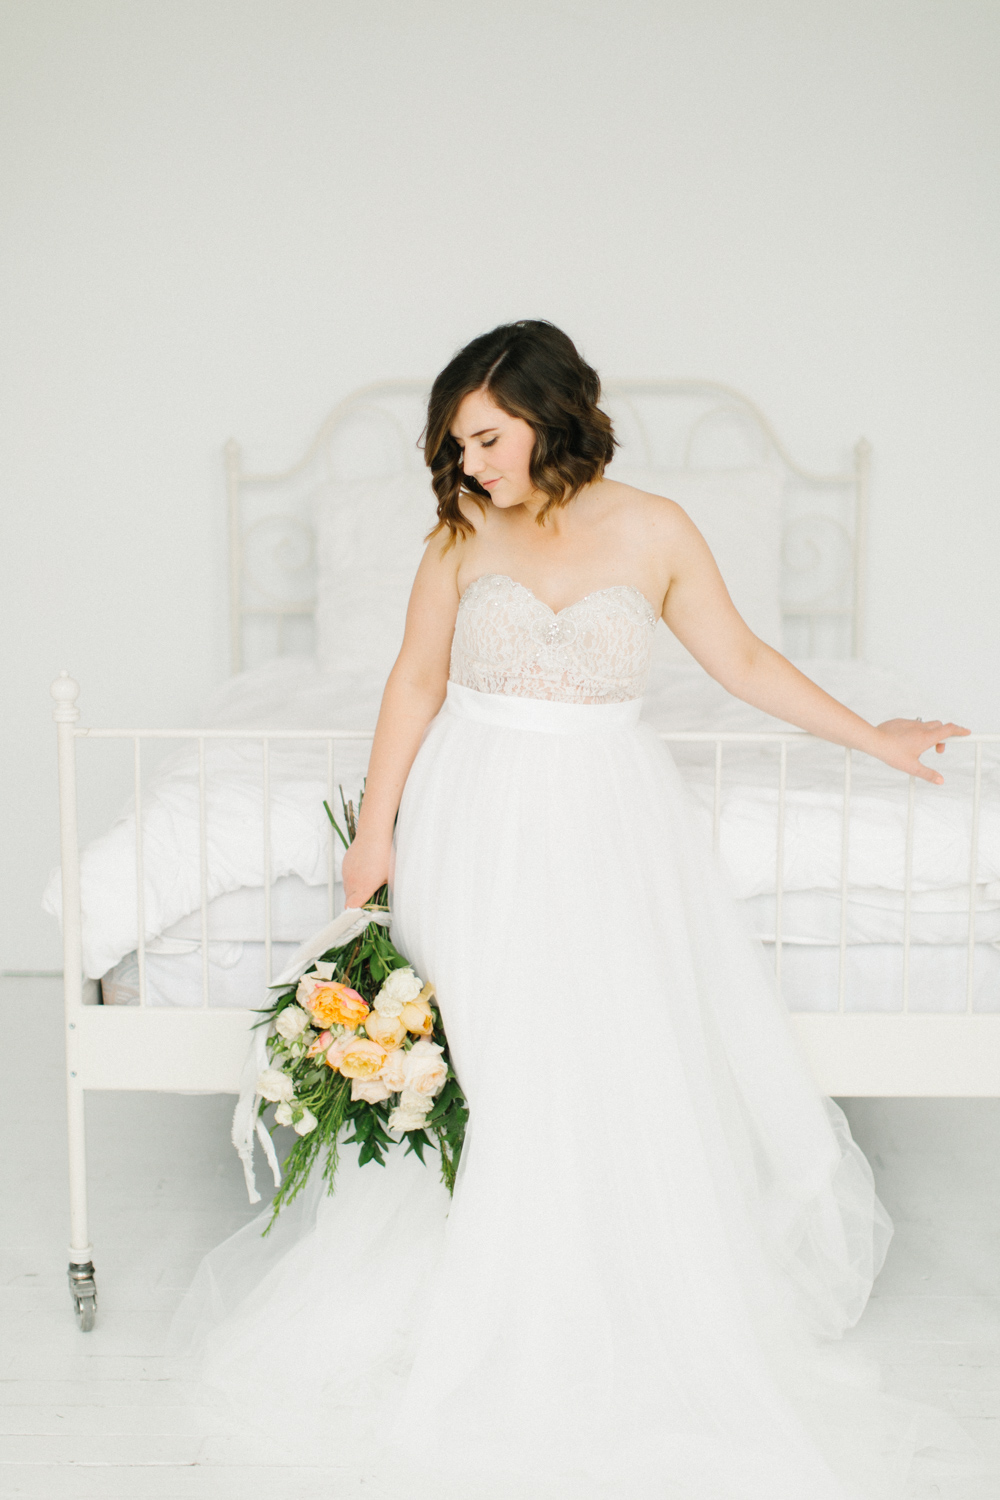 Seattle Fine Art Wedding Photographer | Seattle Downtown White Studio Bridal Session | Stunning Wedding Bouquet | Seattle Bride | Seattle Wedding | Photography Studio Space | Emma Rose Company Wedding Photography-32.jpg